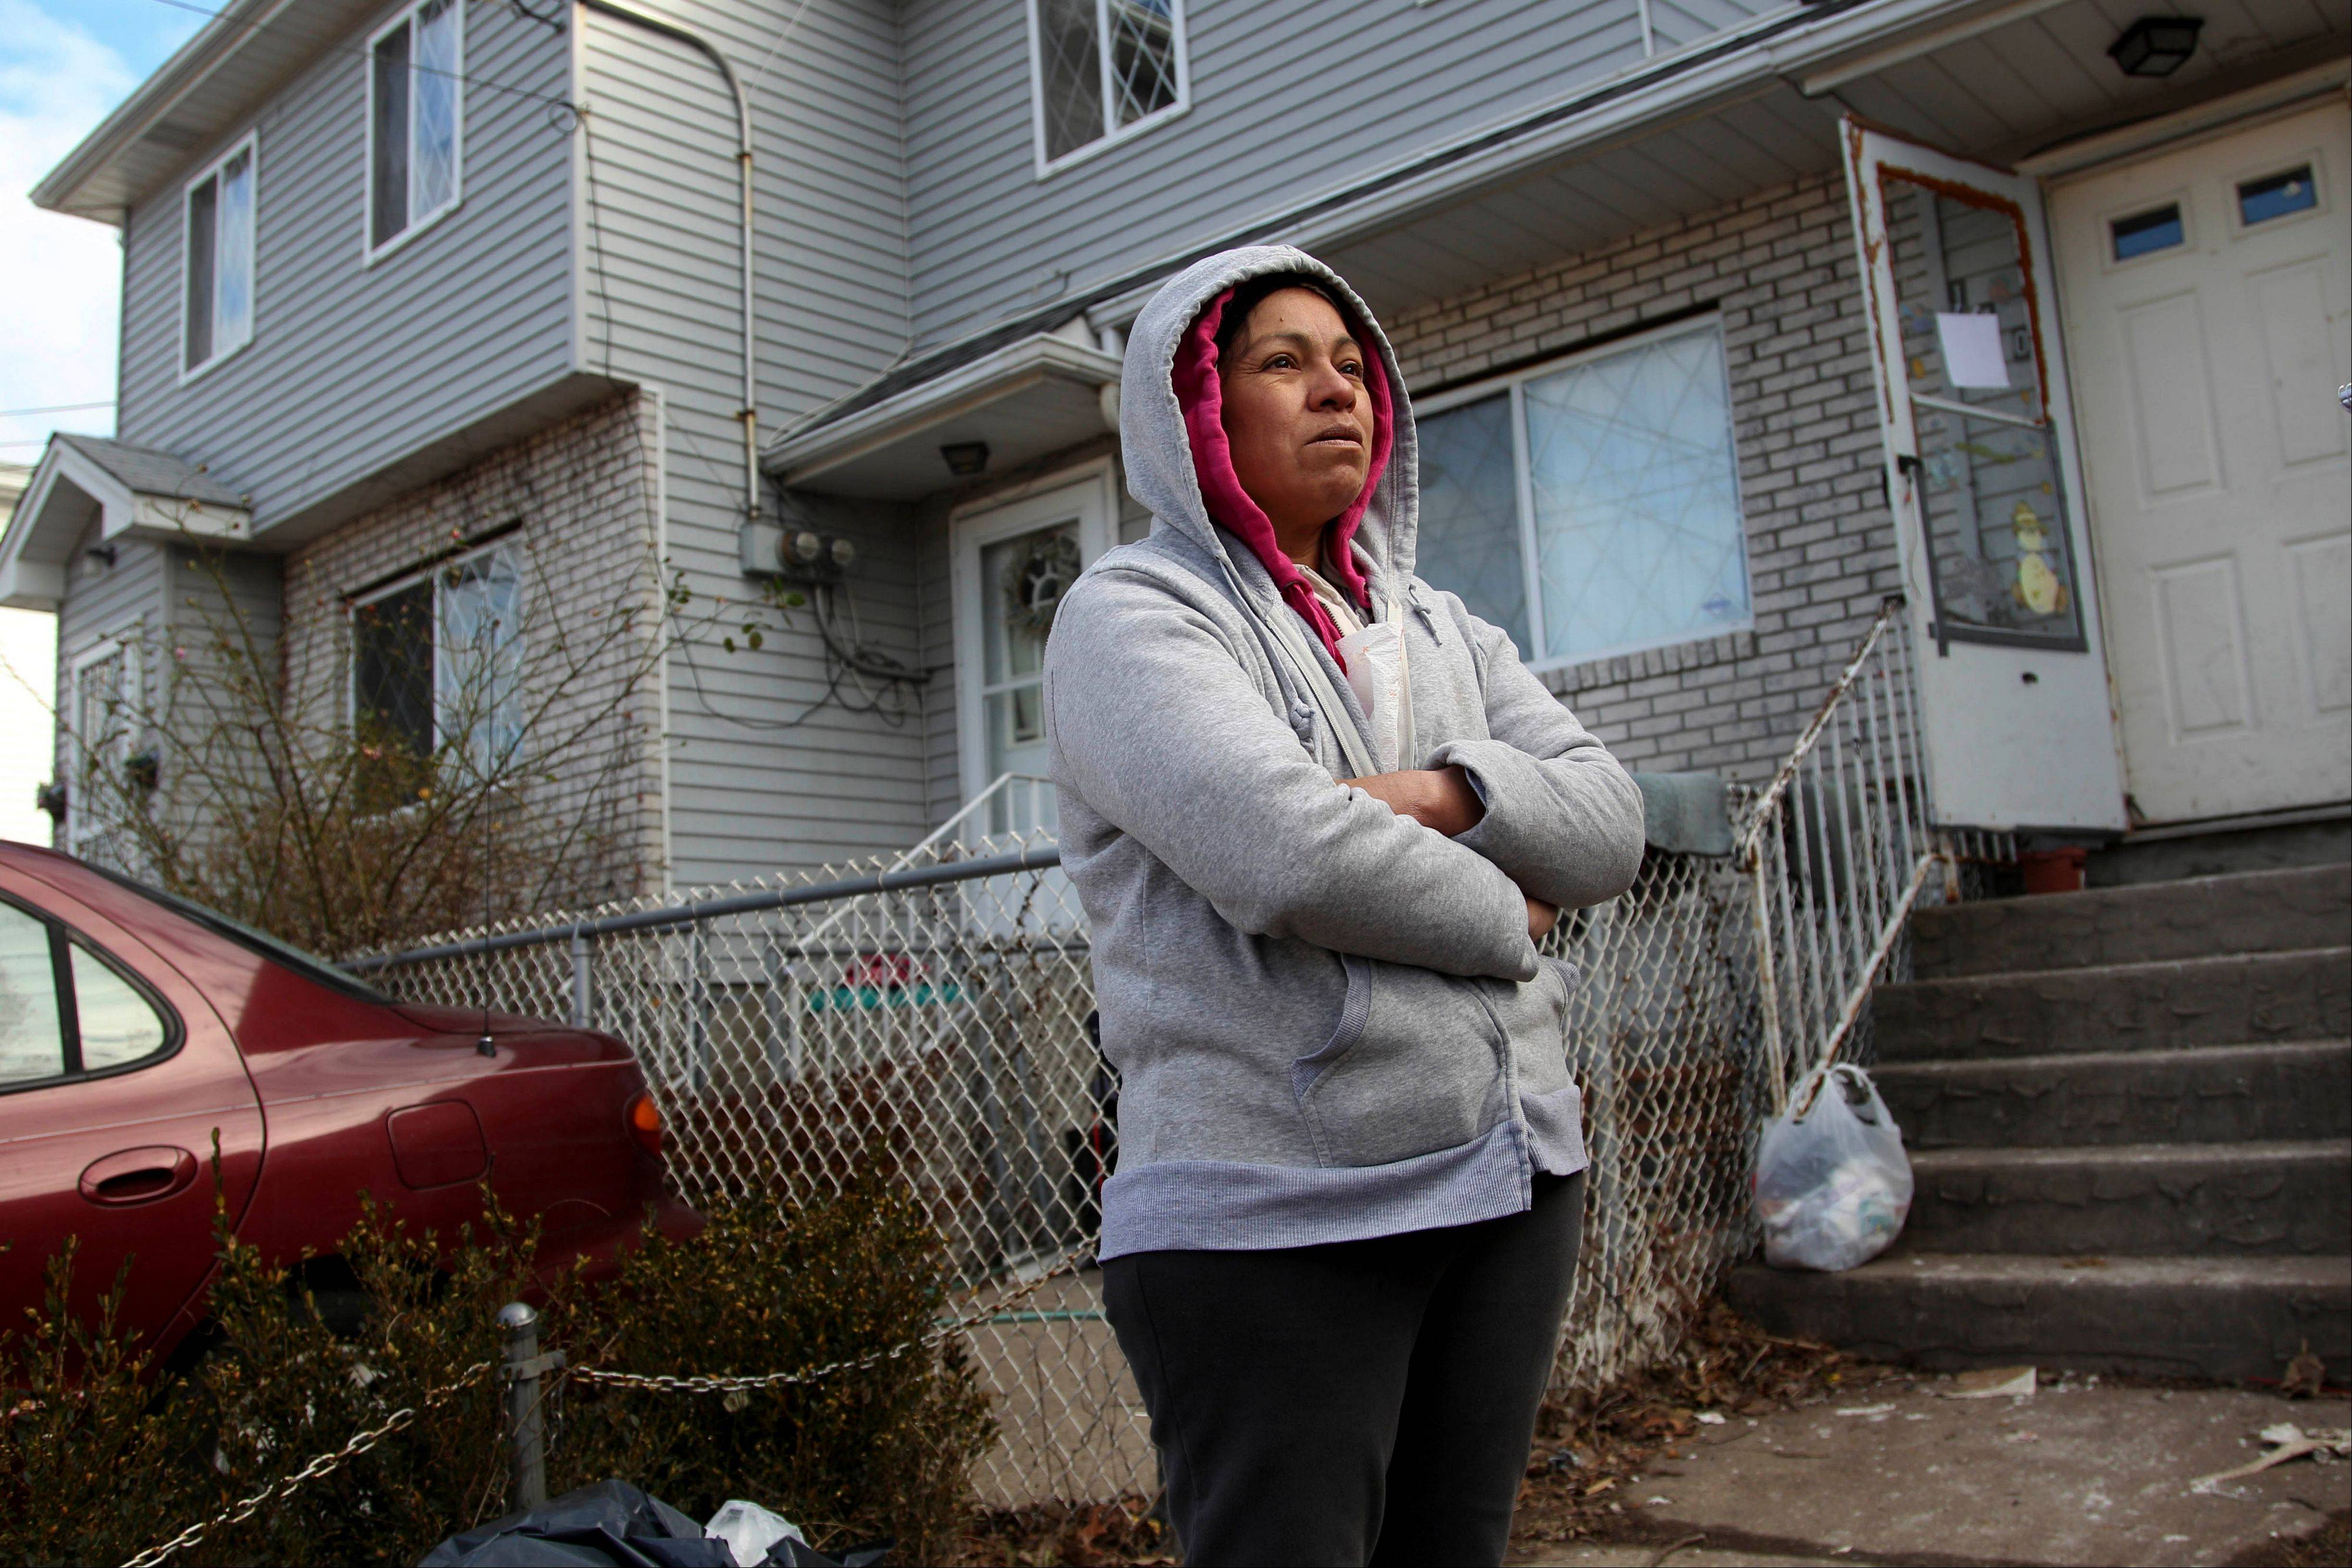 Associated Press/Nov. 14, 2012 Mexican immigrant Maria Lucero stands in front of the home she rented which was damaged by Superstorm Sandy in the Midland Beach section of Staten Island, New York.